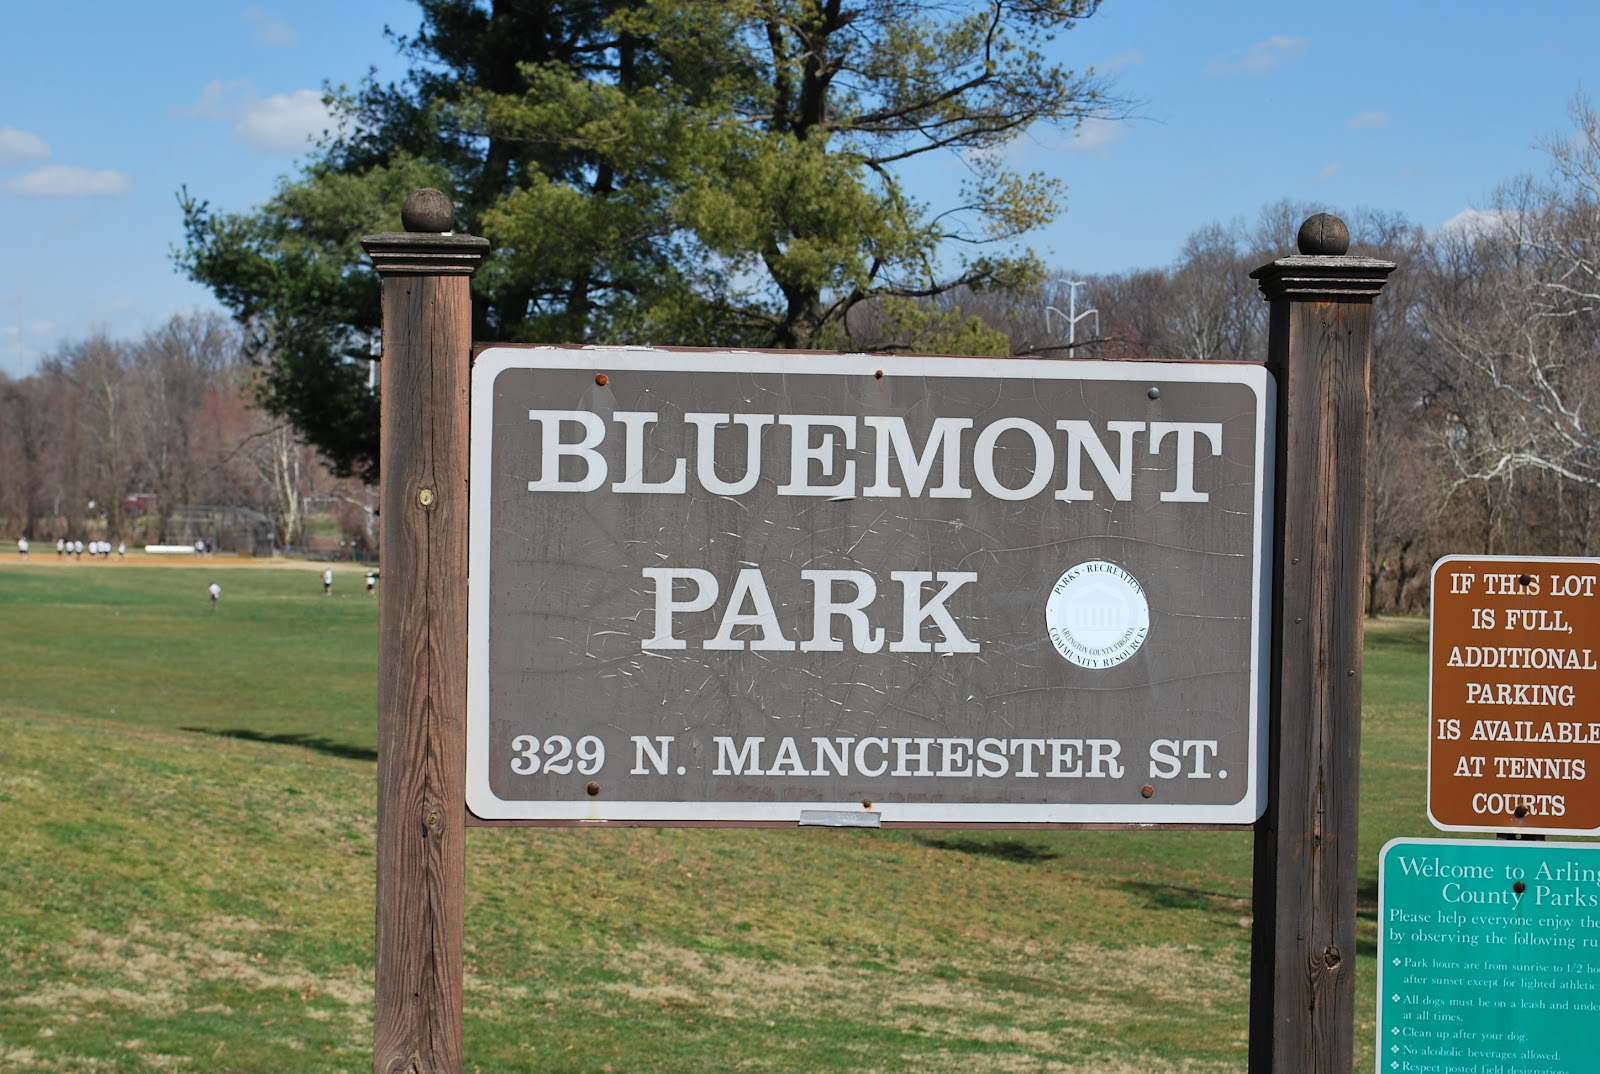 singles in bluemont Bluemont arlington va bluemont neighborhood in 2 sentences: bluemont is a  large  the neighborhood is primarily made up of single-family homes as we  get.